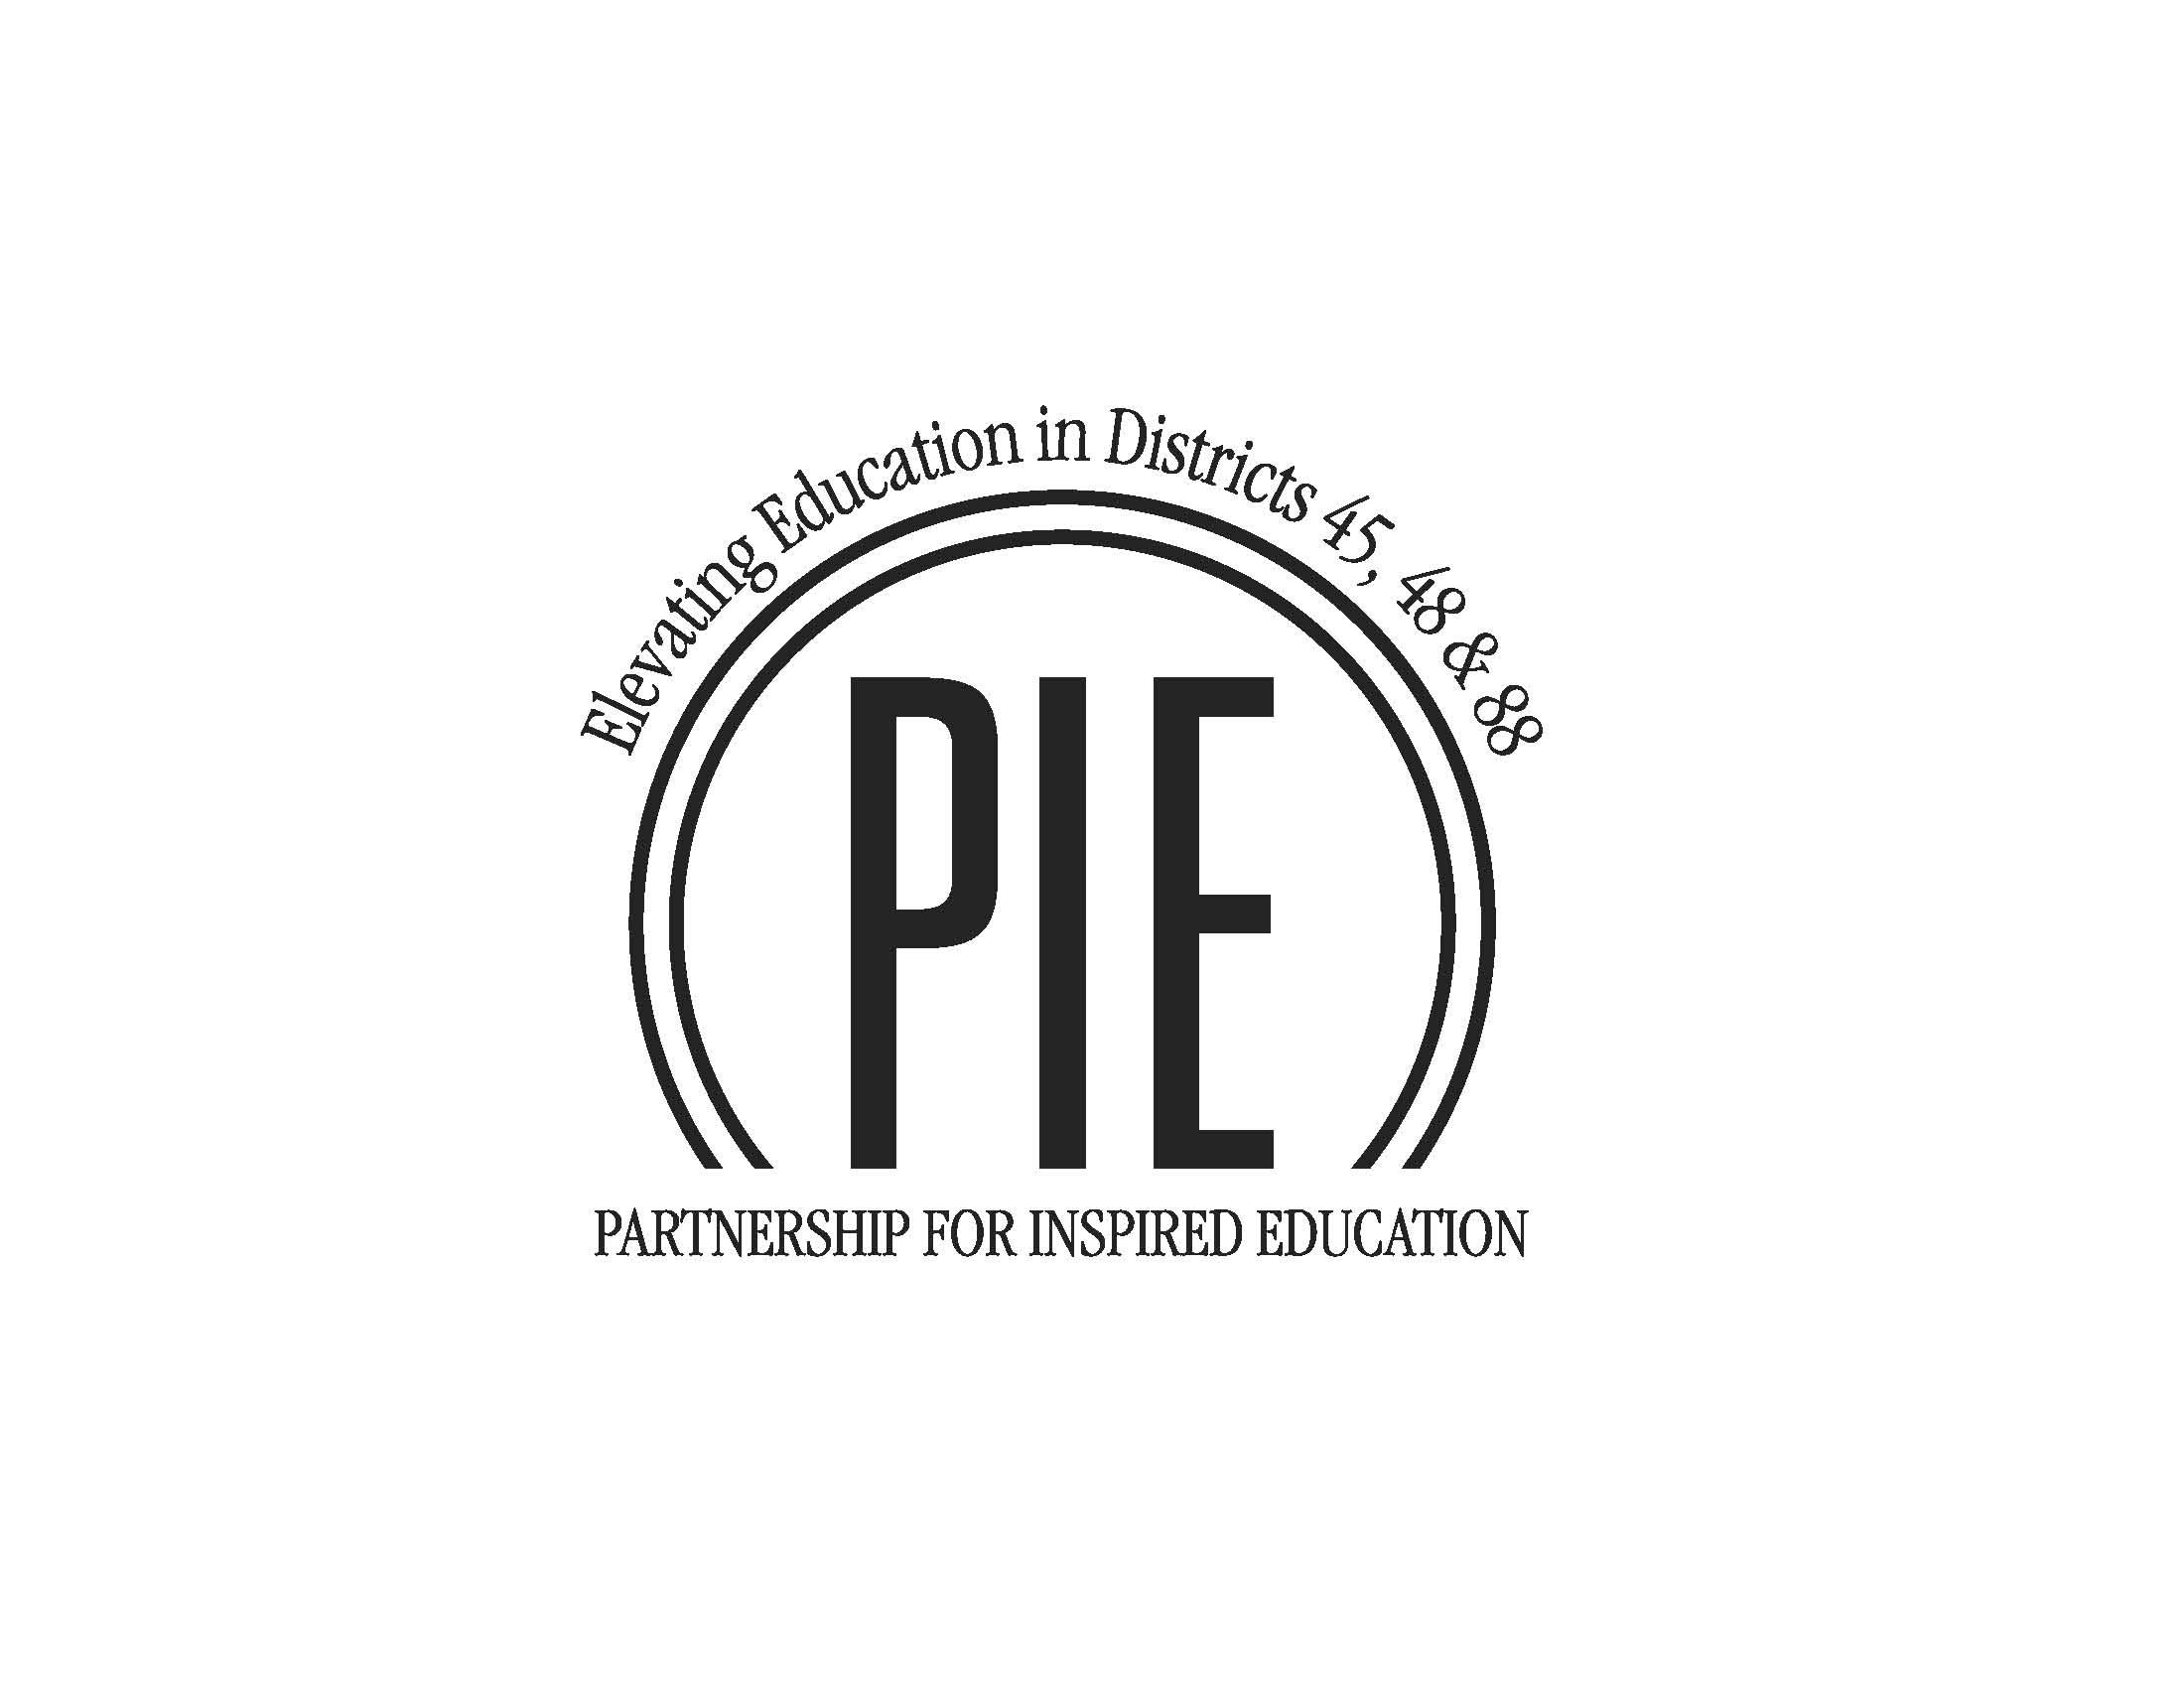 You're invited to attend an evening of entertainment, dining and fun with the PIE Foundation